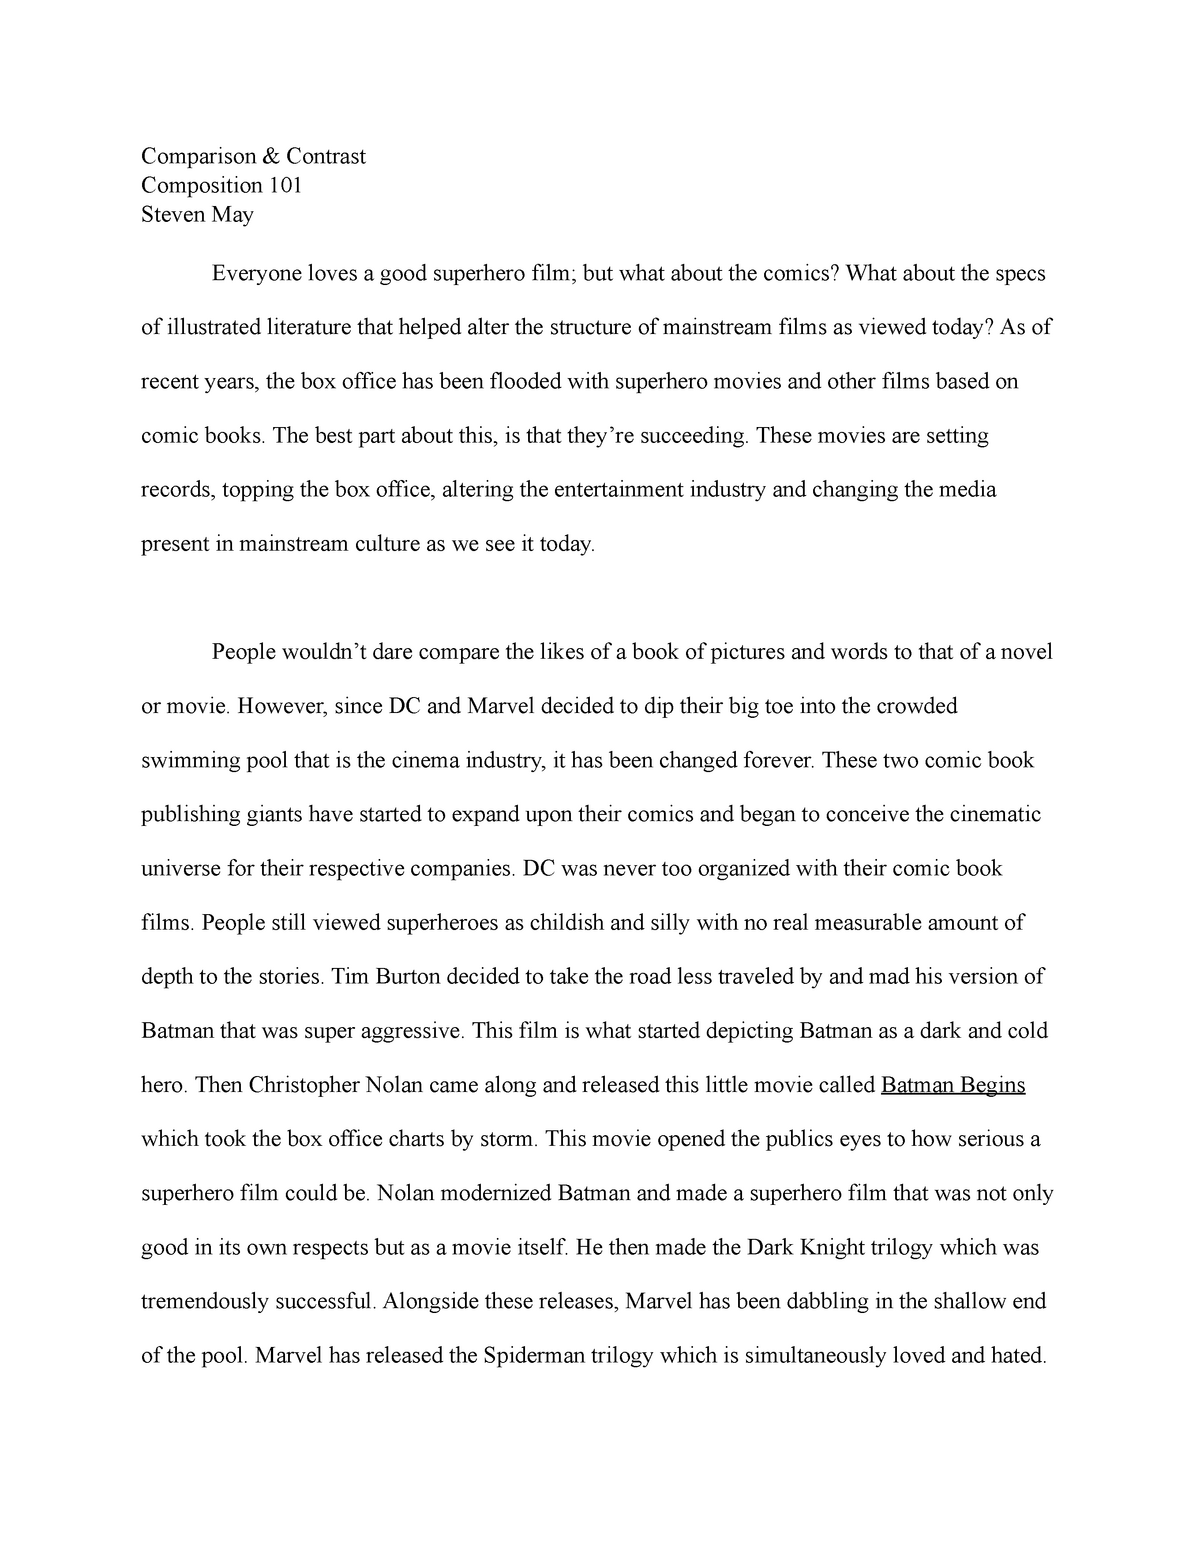 Book comparison essay